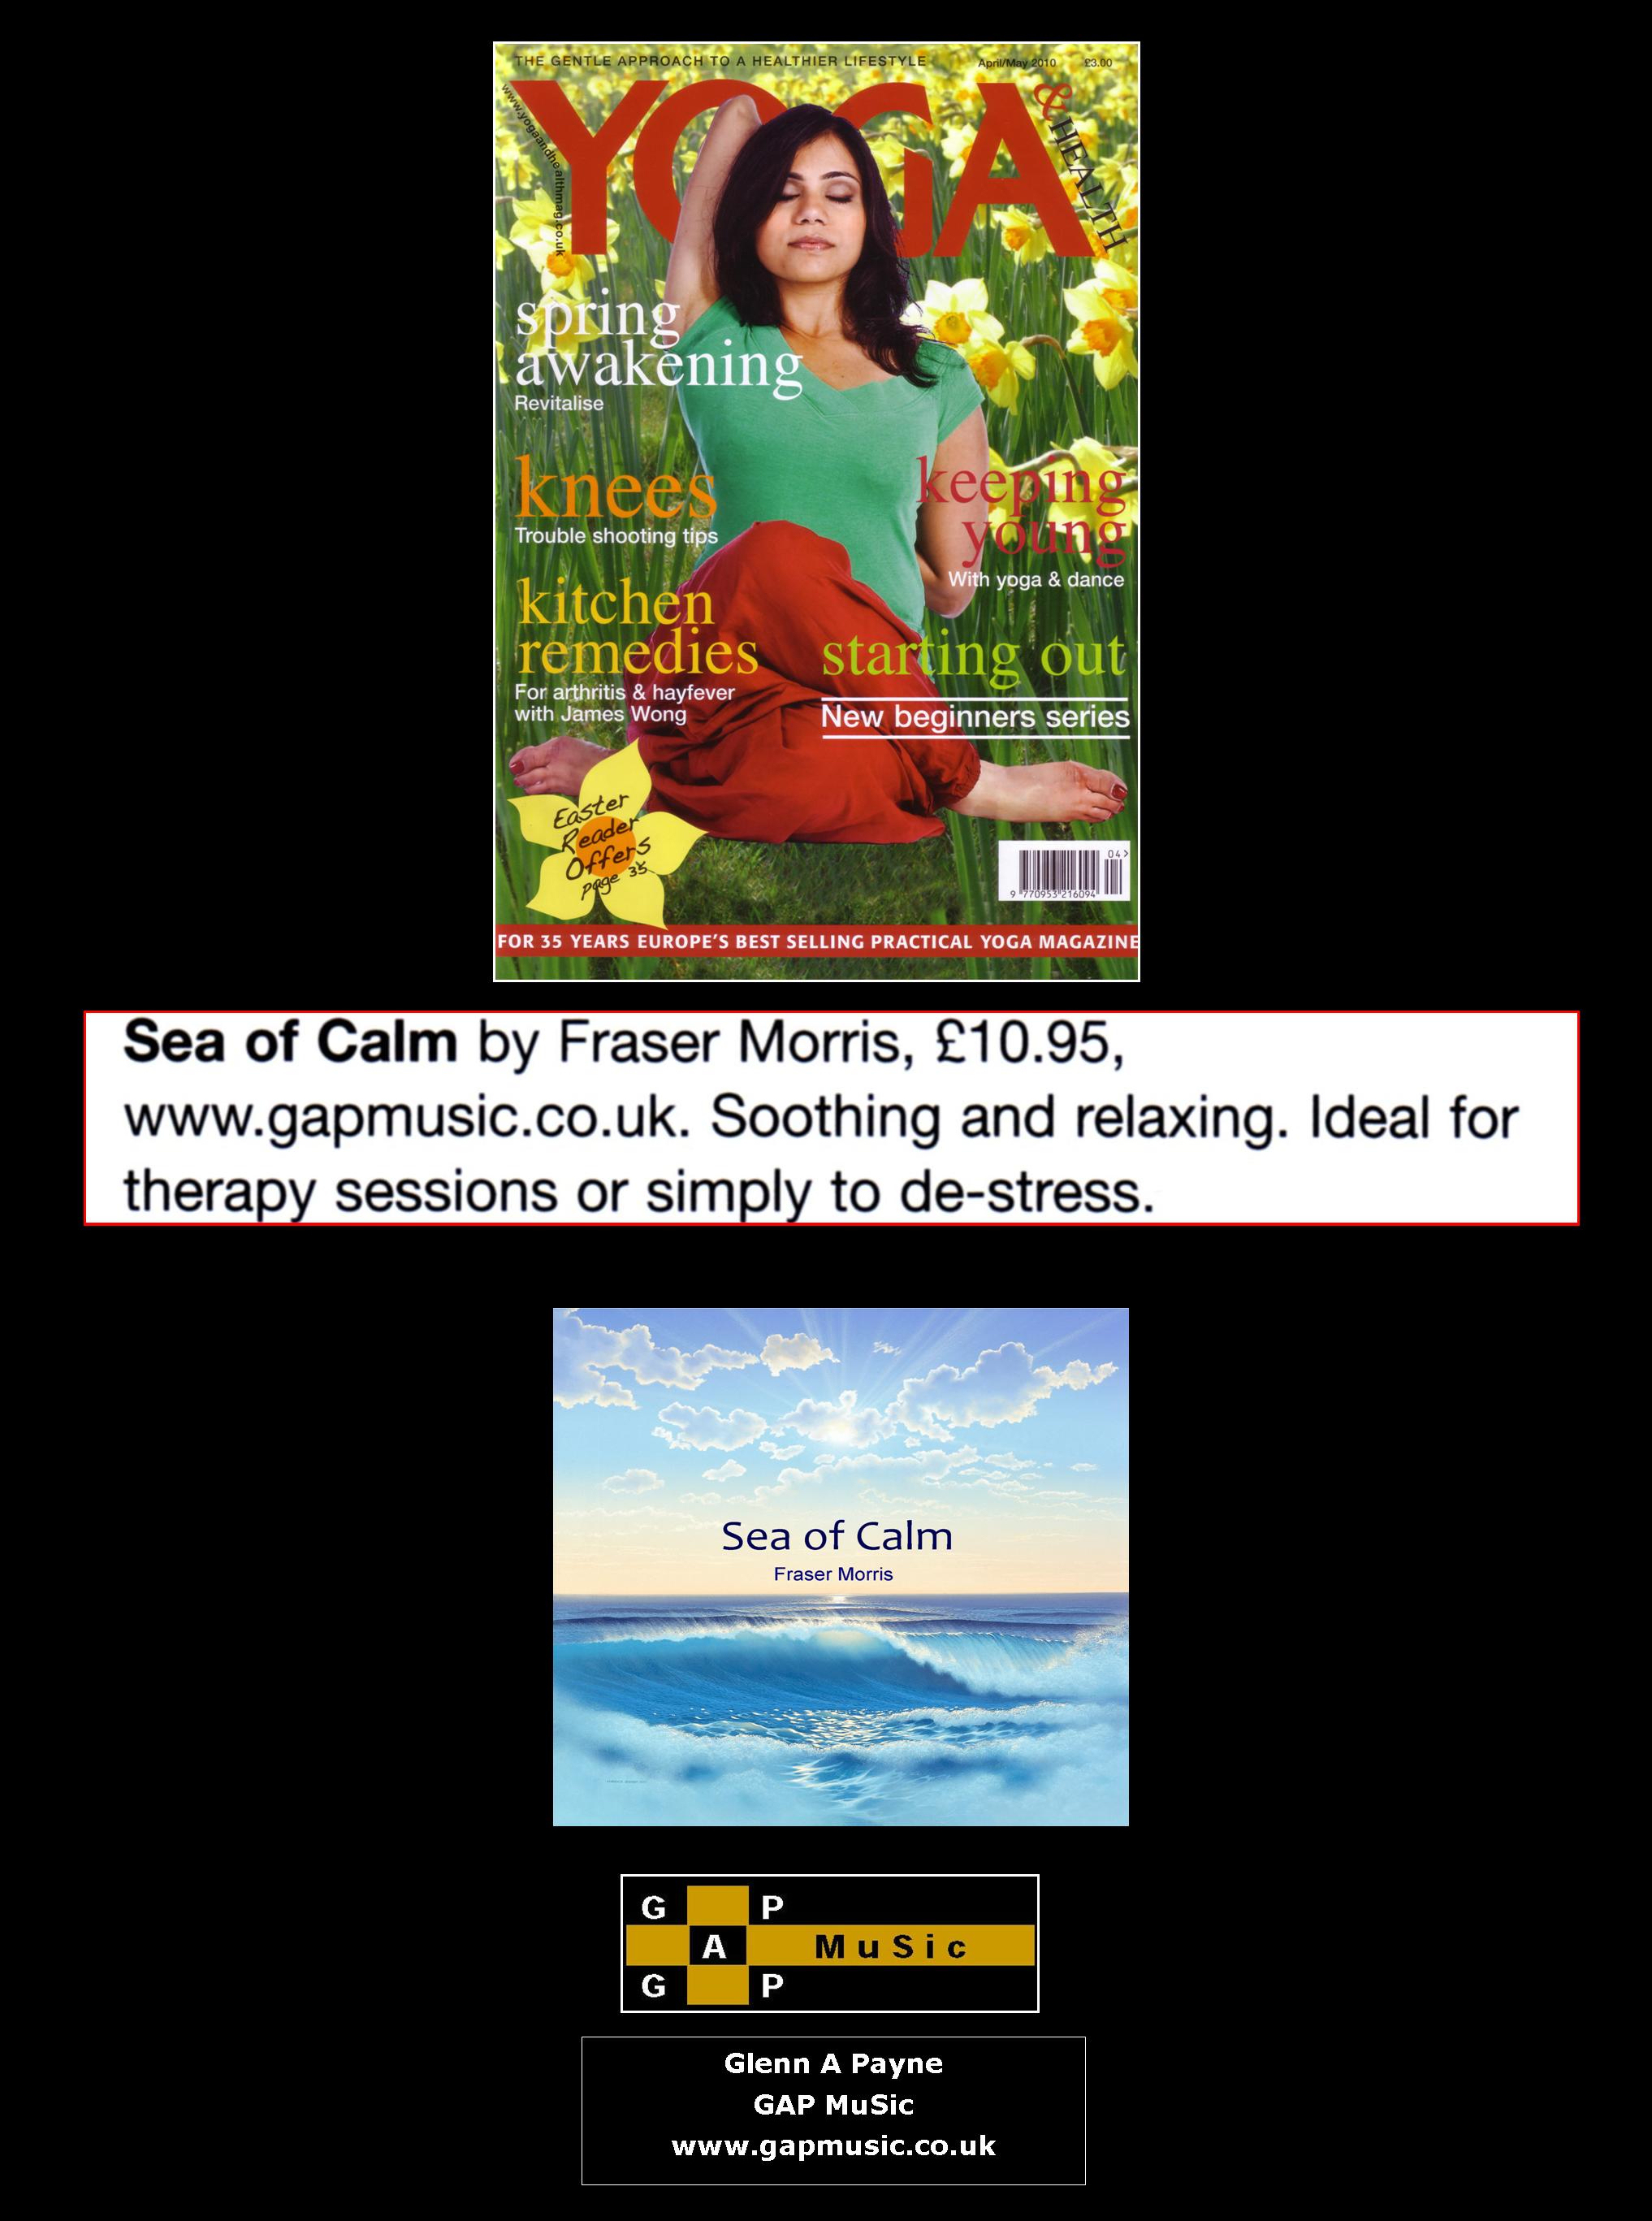 Sea of Calm - Yoga & Health Magazine